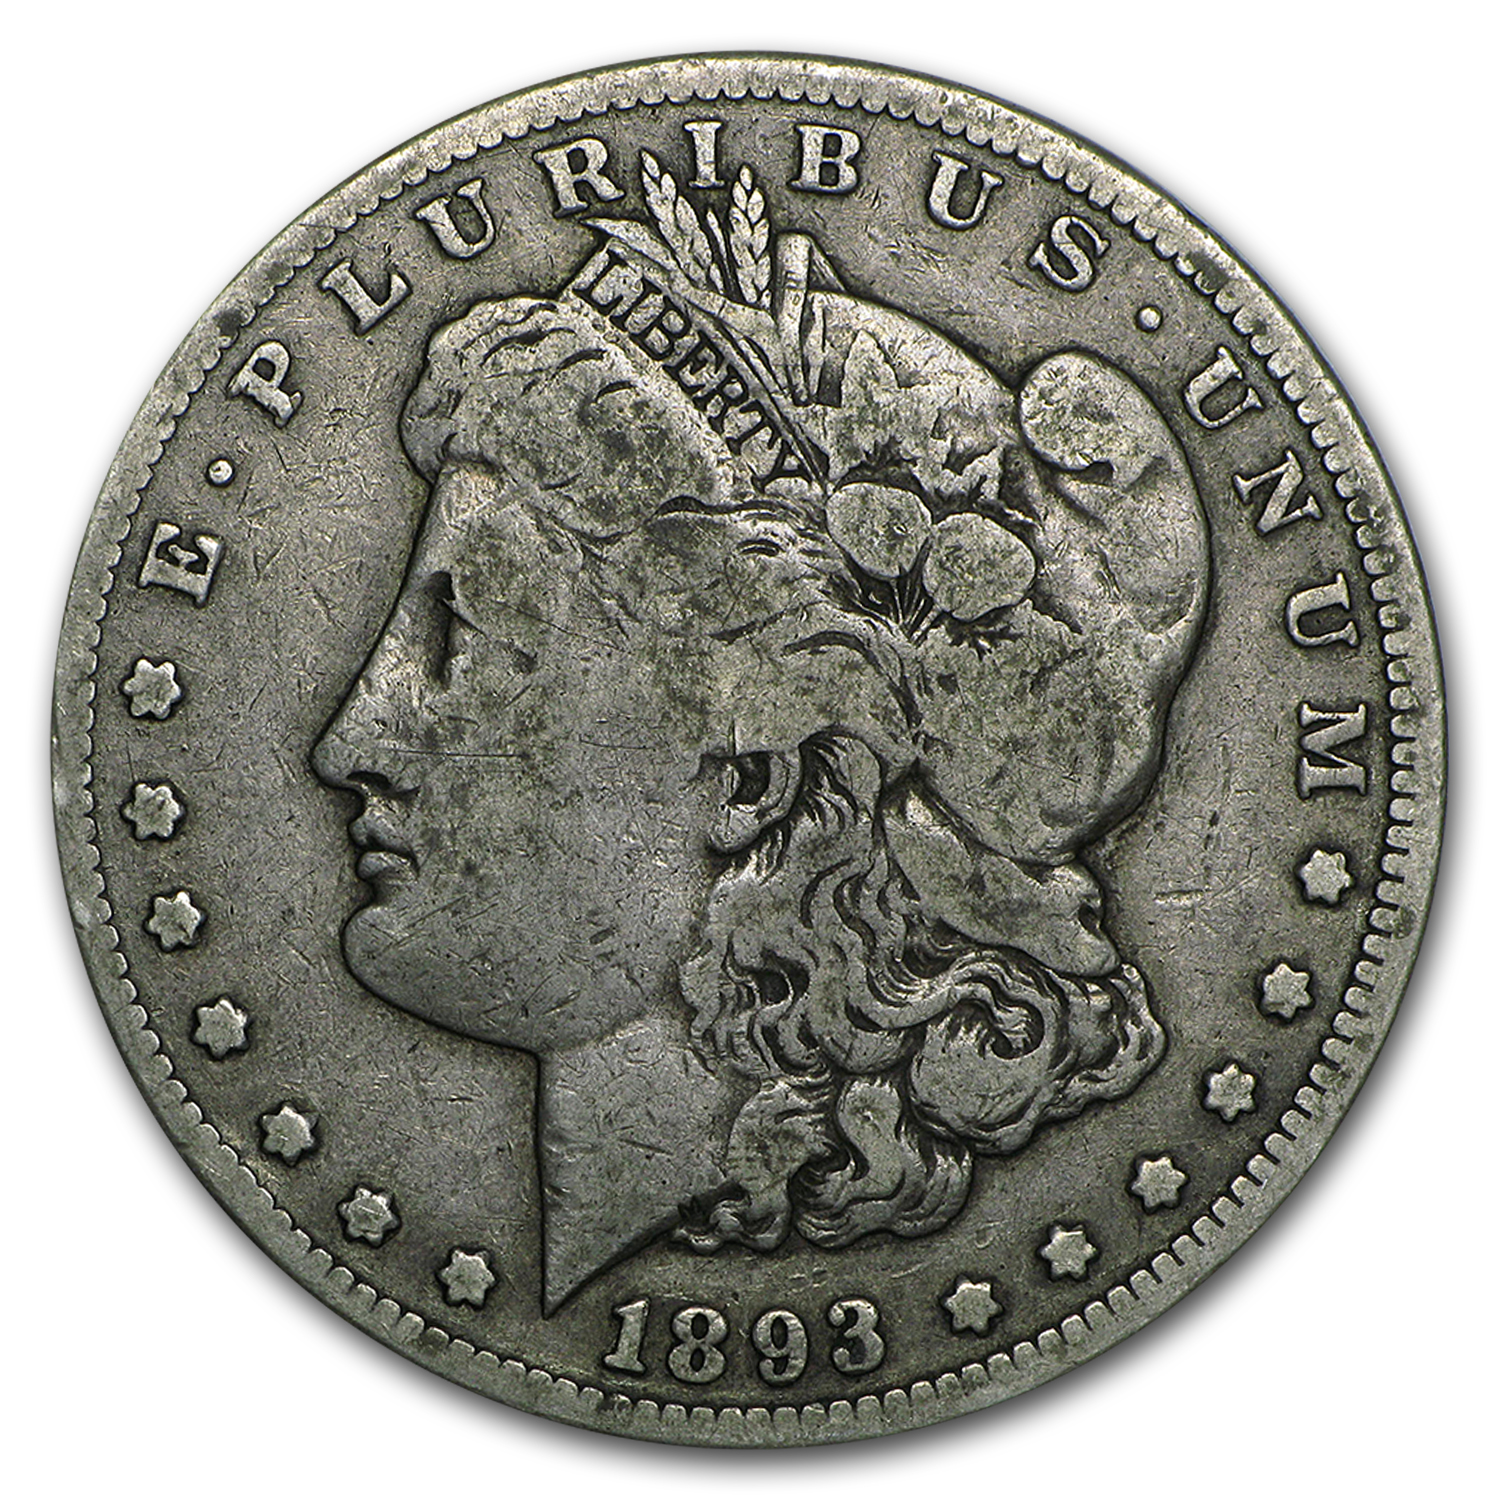 1893-CC Morgan Dollar - Very Fine